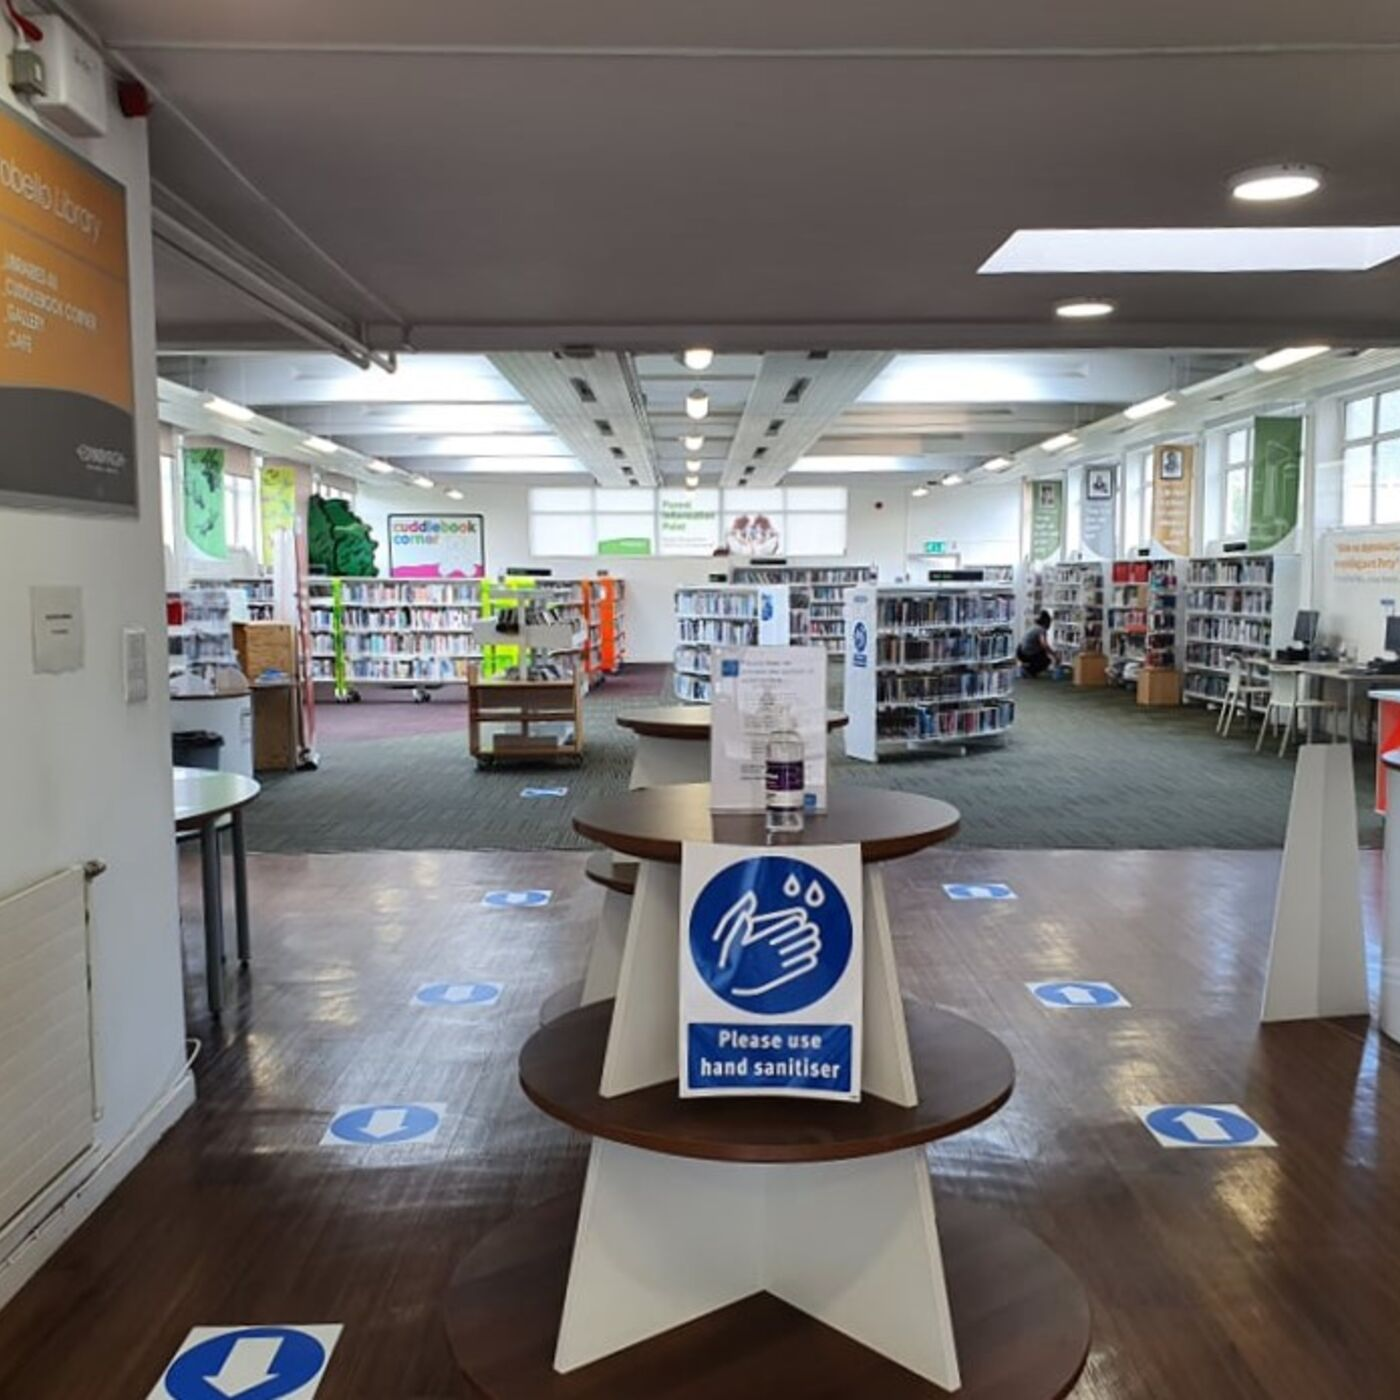 213 Porty Library Re-opens